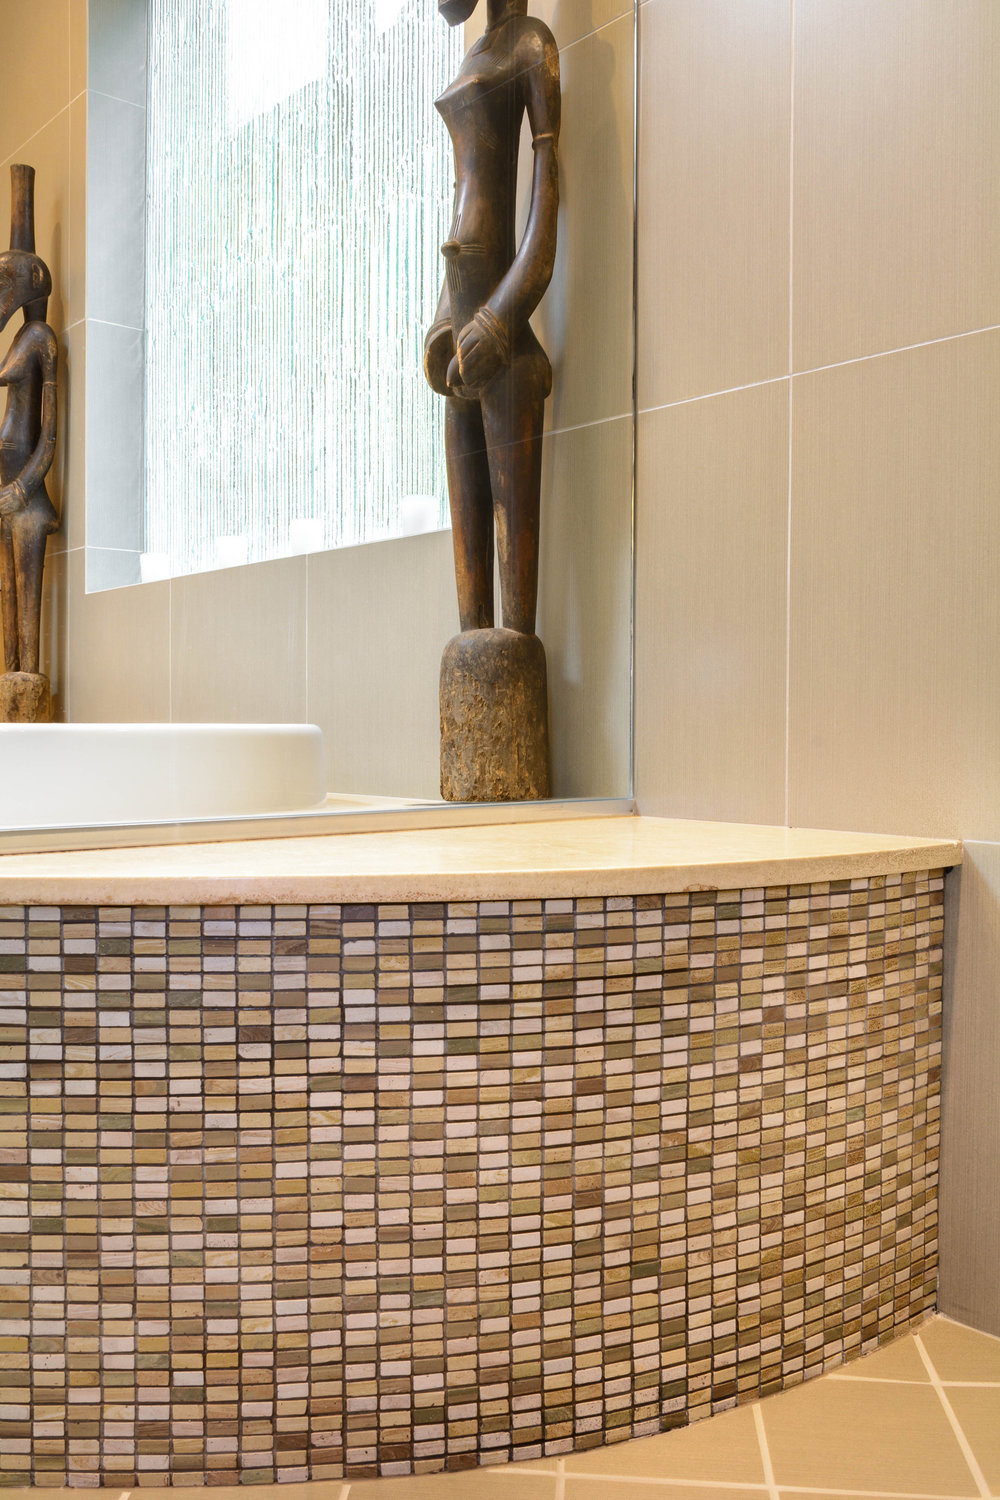 Mosaic tile bathtub surround completing large-format wall tile, diagonal field floor tile and art pieces